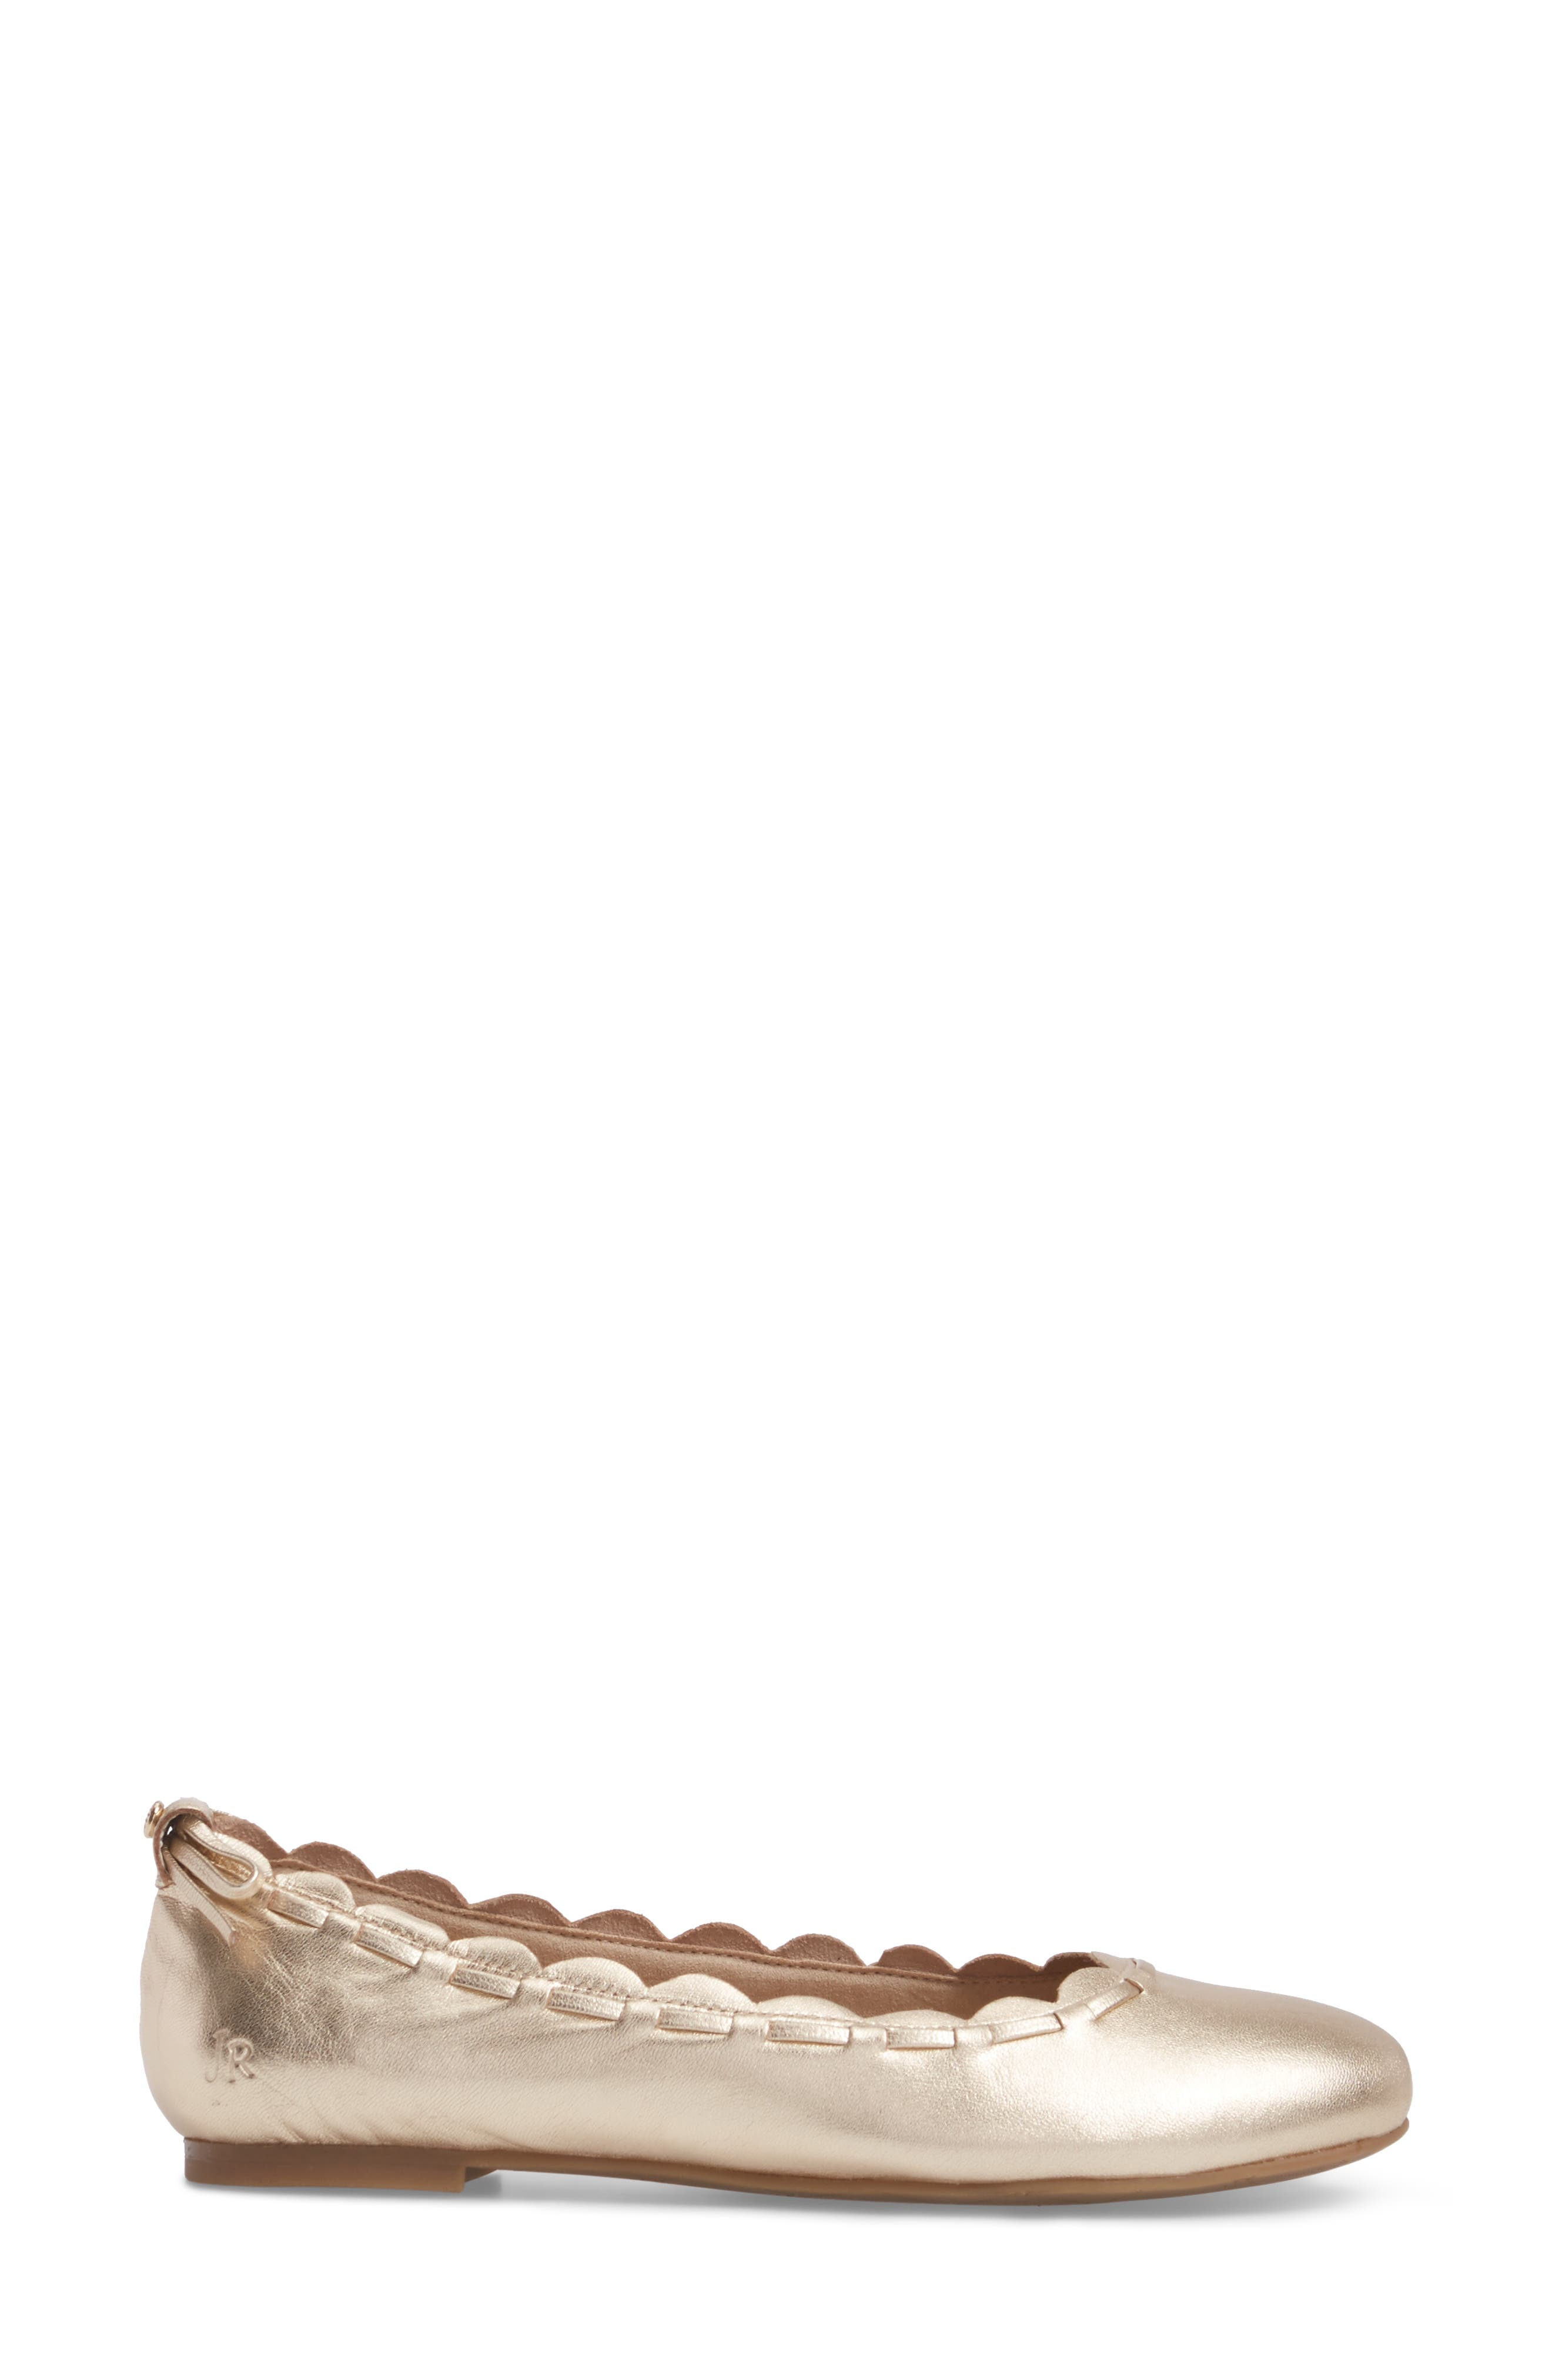 Lucie Scalloped Flat,                             Alternate thumbnail 3, color,                             040